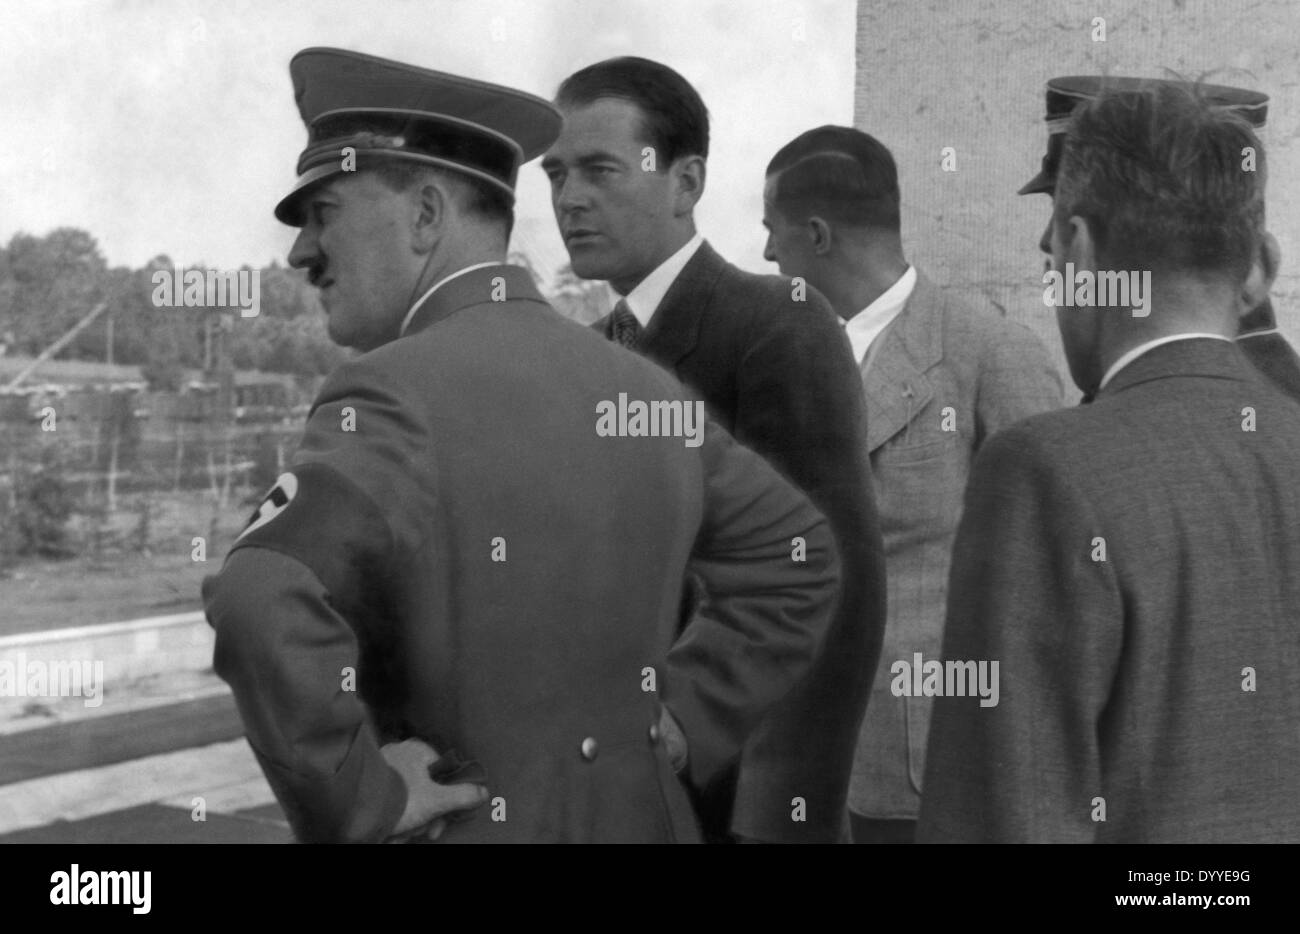 speers rise in the nazi party essay Albert speer's rise to prominence essay albert speer joined the nazi party on the 1st of march 1931, becoming member number 474 481.